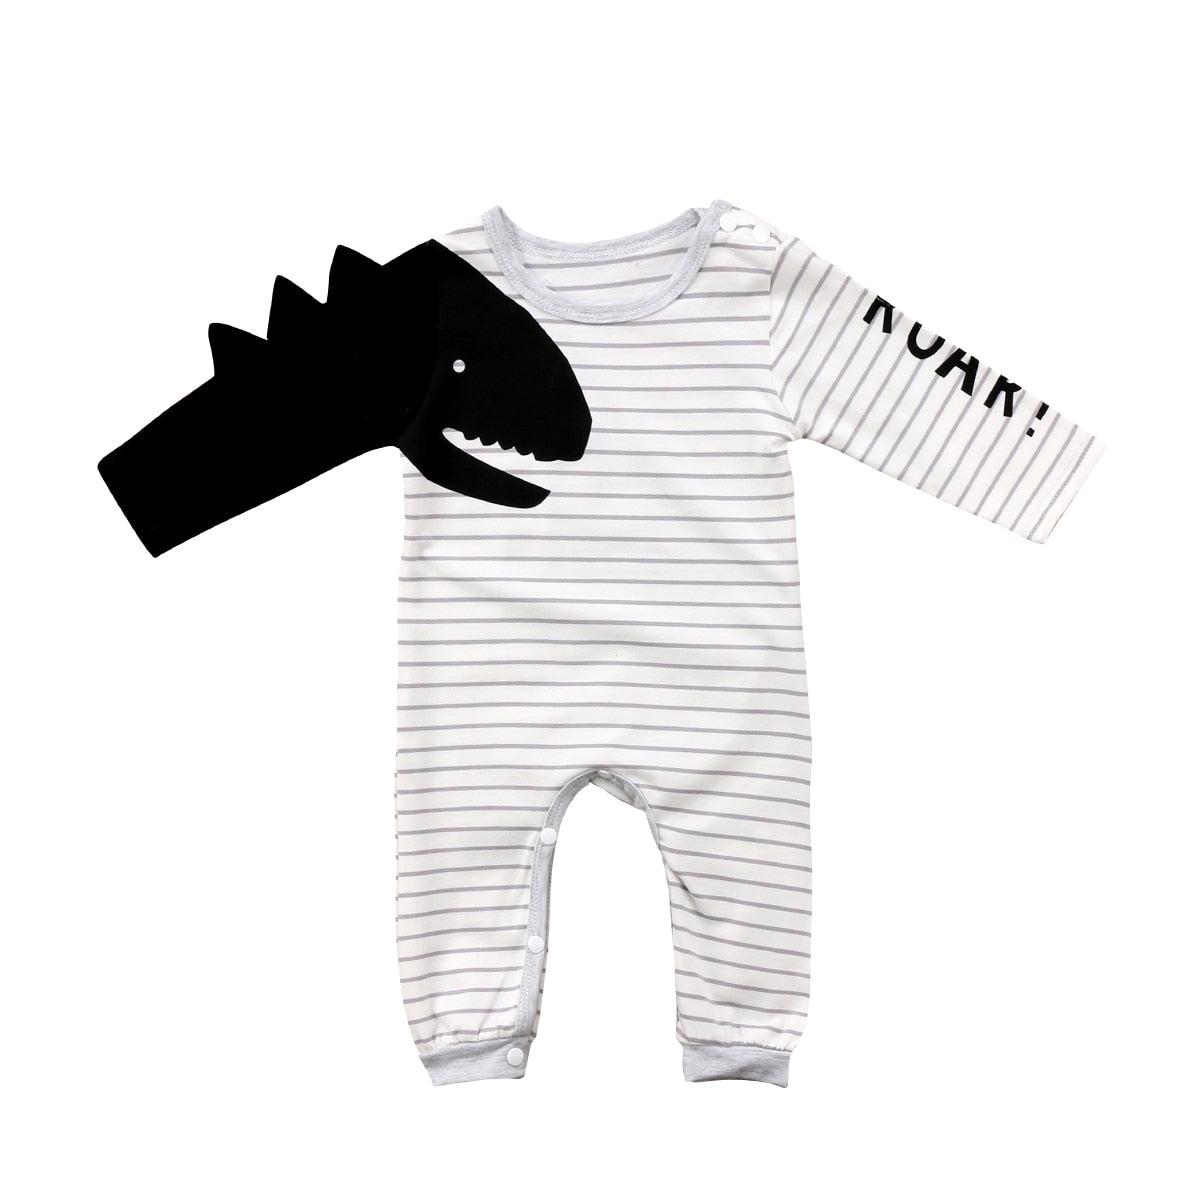 Newborn Baby Boy Girls 3D Dinosaur Romper Long Sleeve Striped Jumpsuit Outfits Set Clothes-eosegal